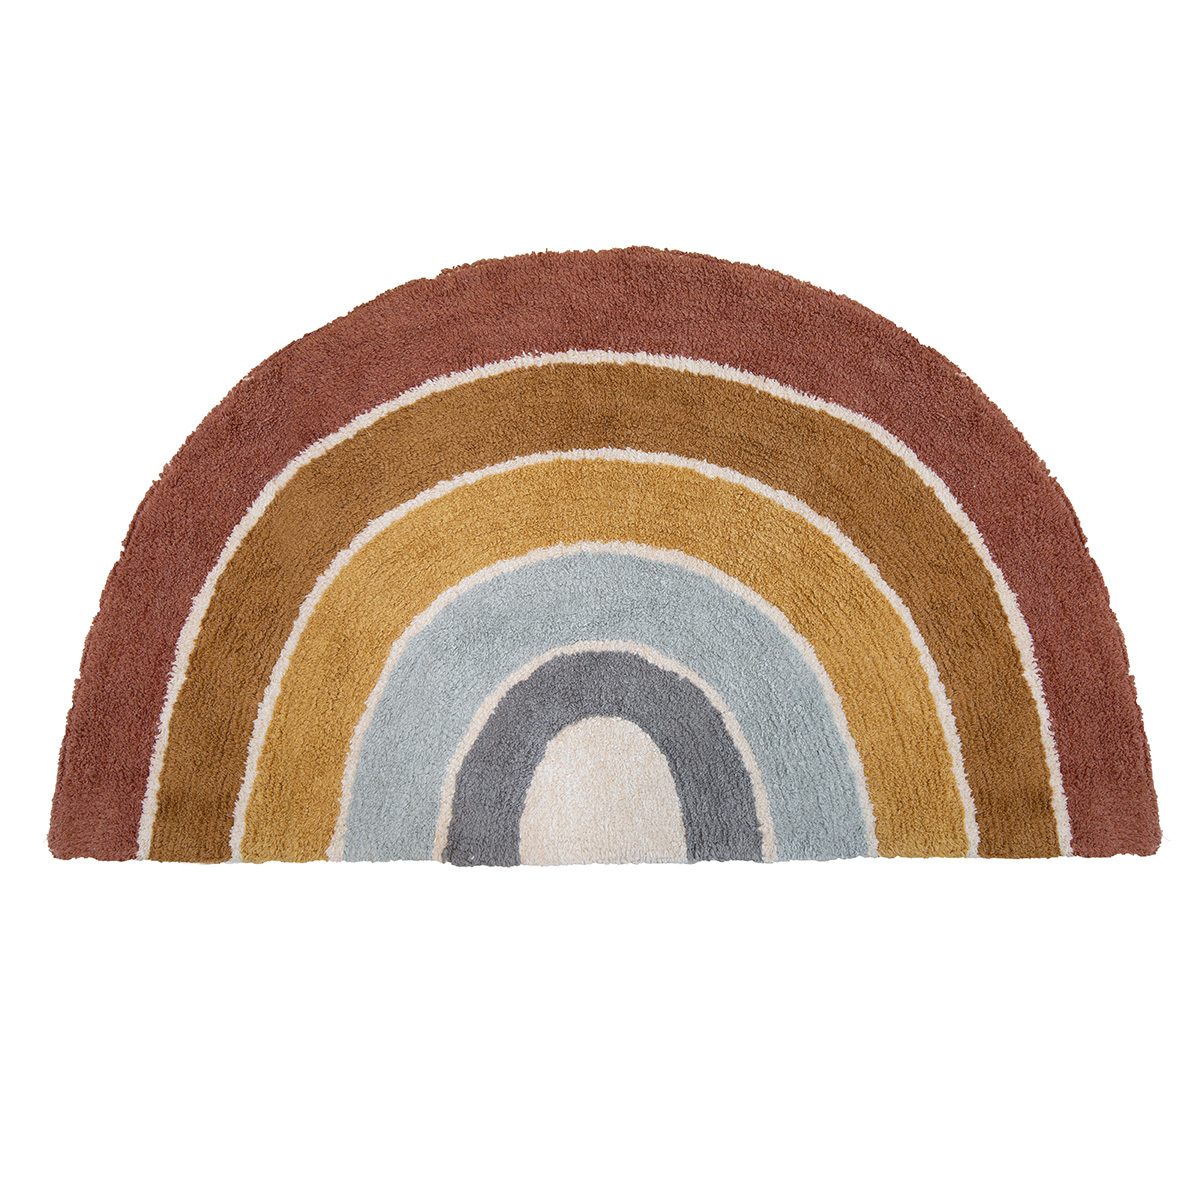 Tapis Tapis Rainbow Shape Pure & Nature - 80 x 130 cm Tapis Rainbow Shape Pure & Nature - 80 x 130 cm